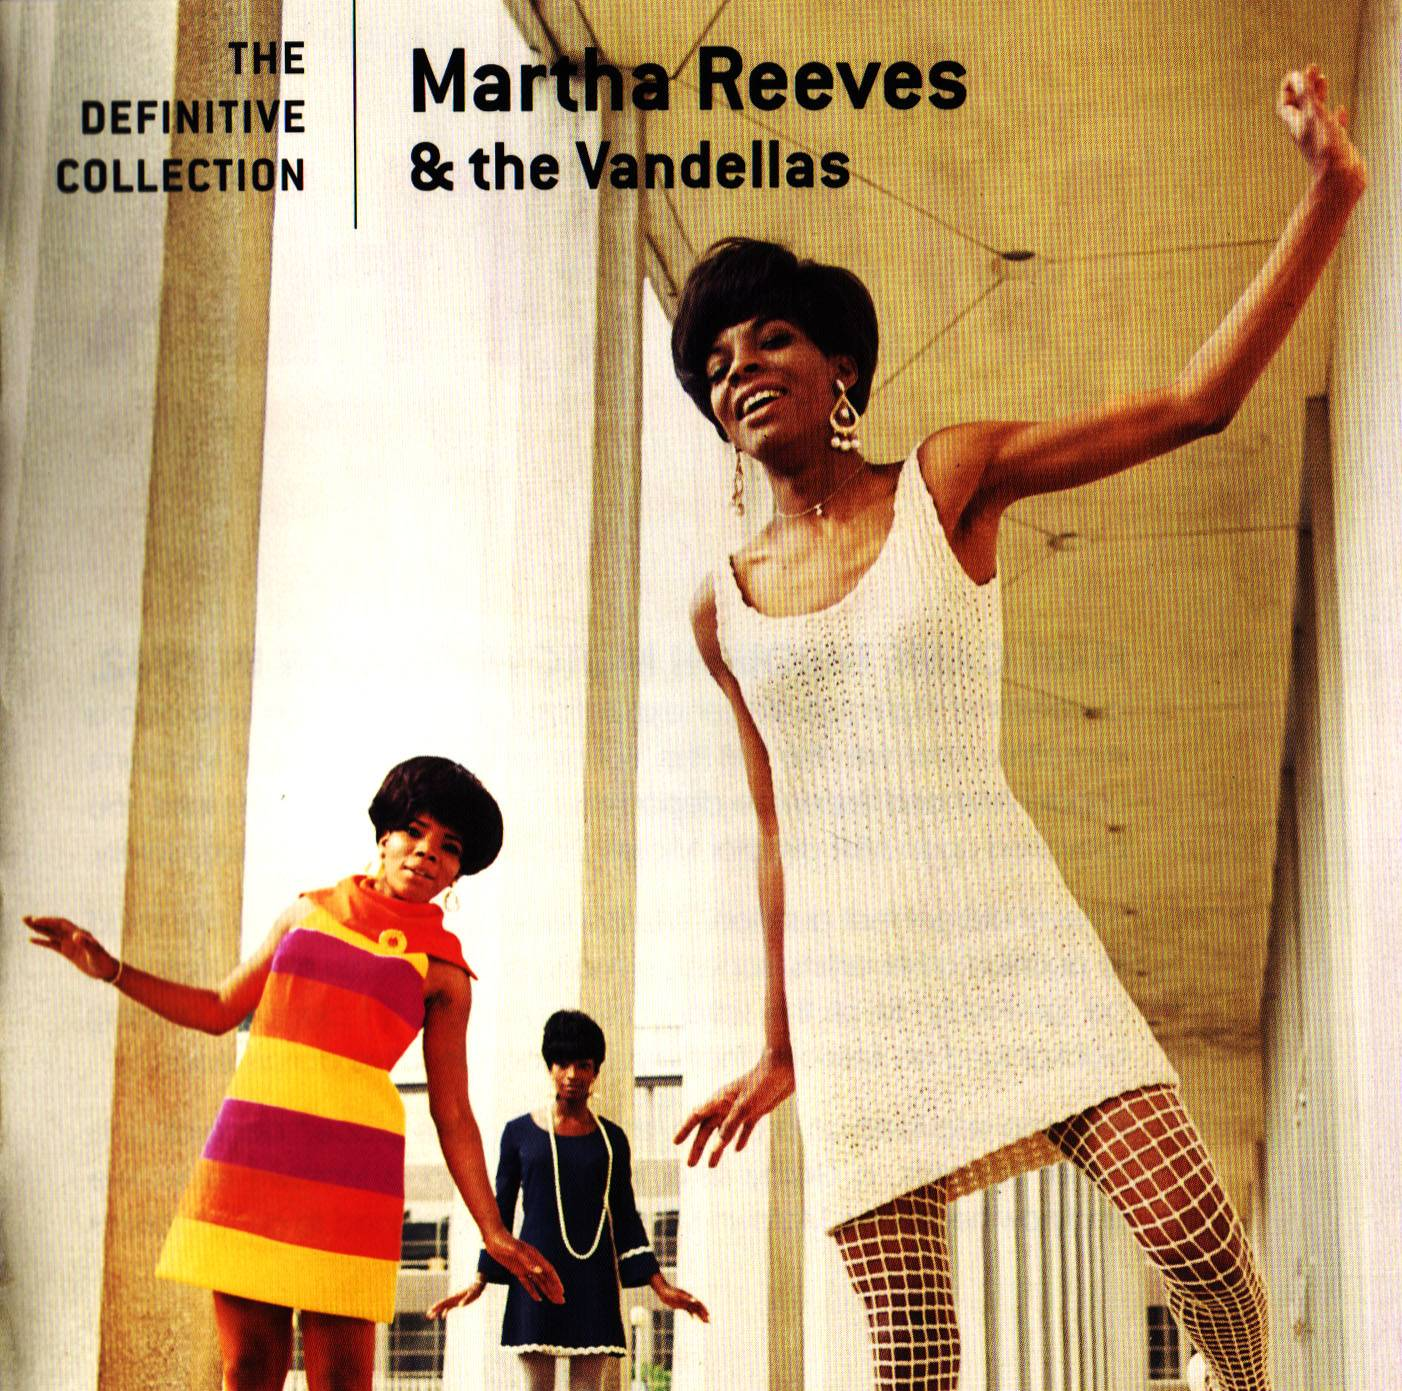 Martha Reeves & The Vandellas - The Definitive Collection (2008) [Repost]